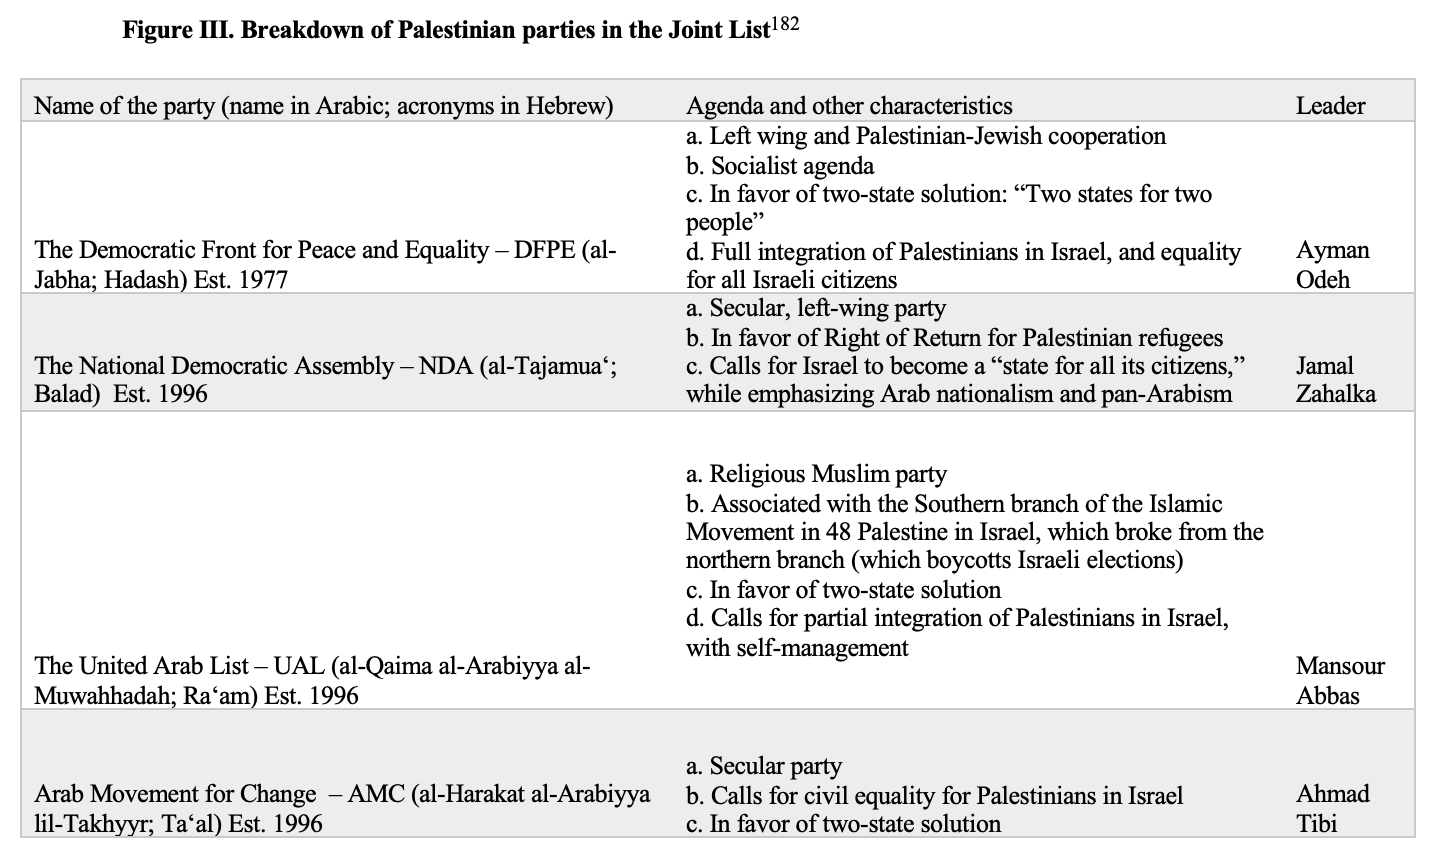 Figure III. Breakdown of Palestinian parties in the Joint List